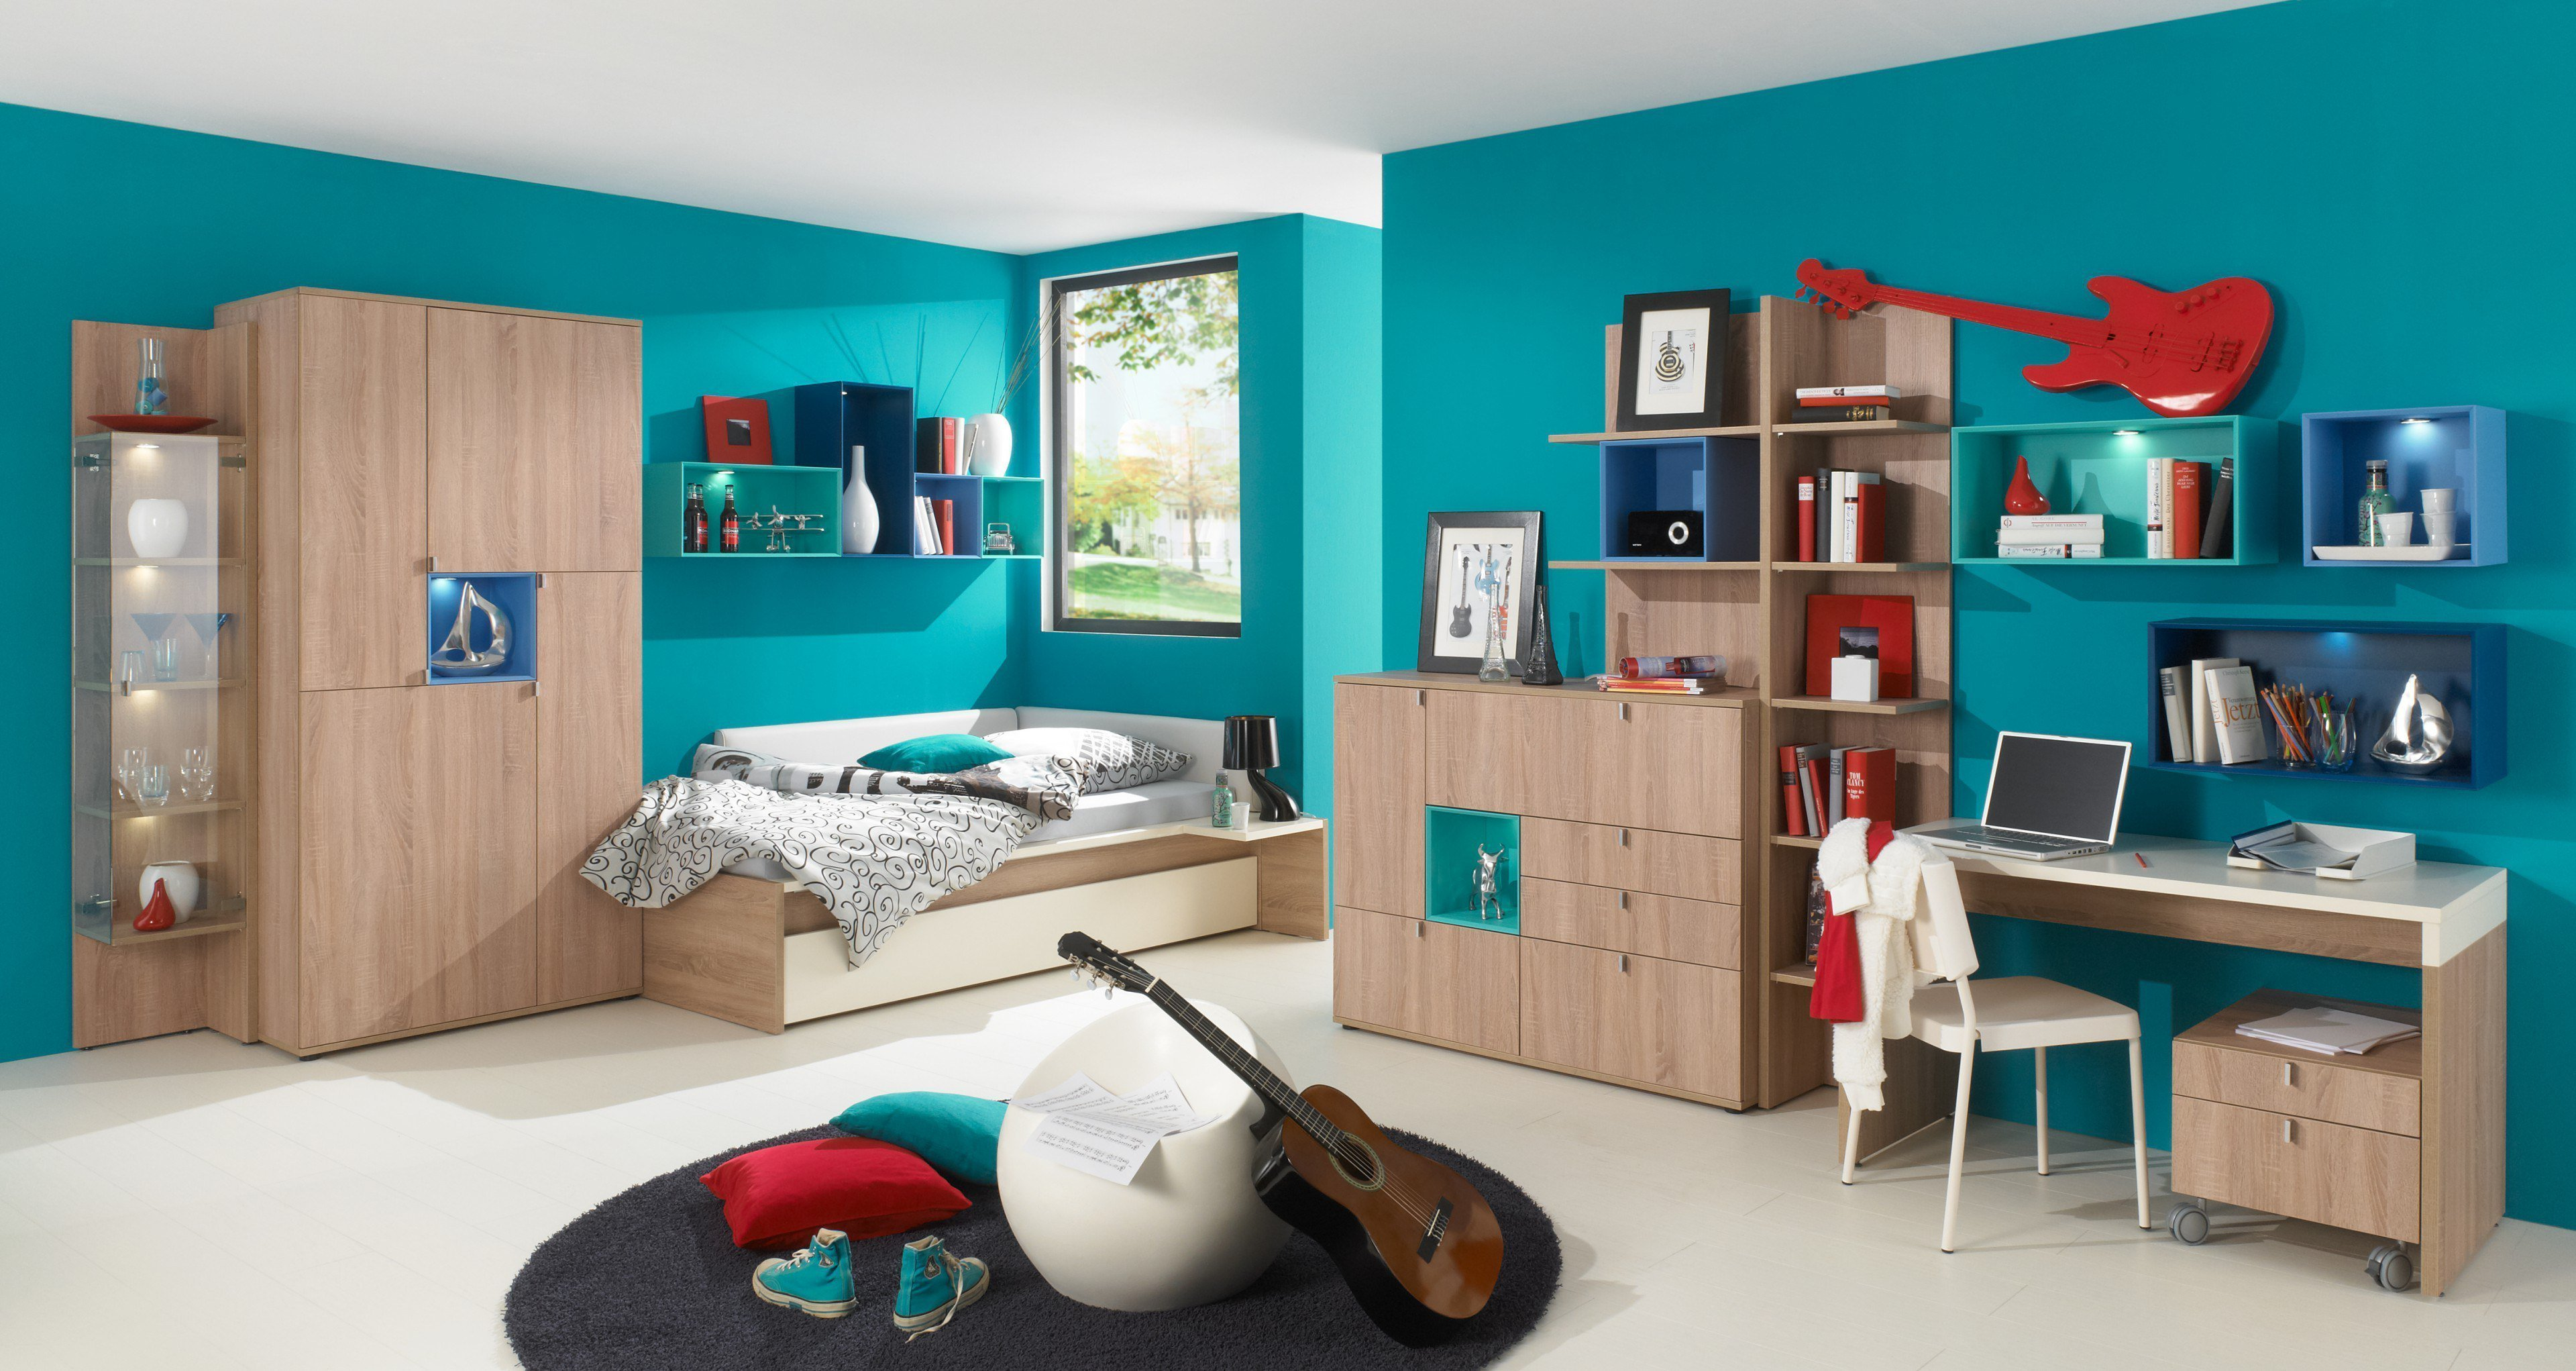 kinderzimmer ontwerp lampen. Black Bedroom Furniture Sets. Home Design Ideas